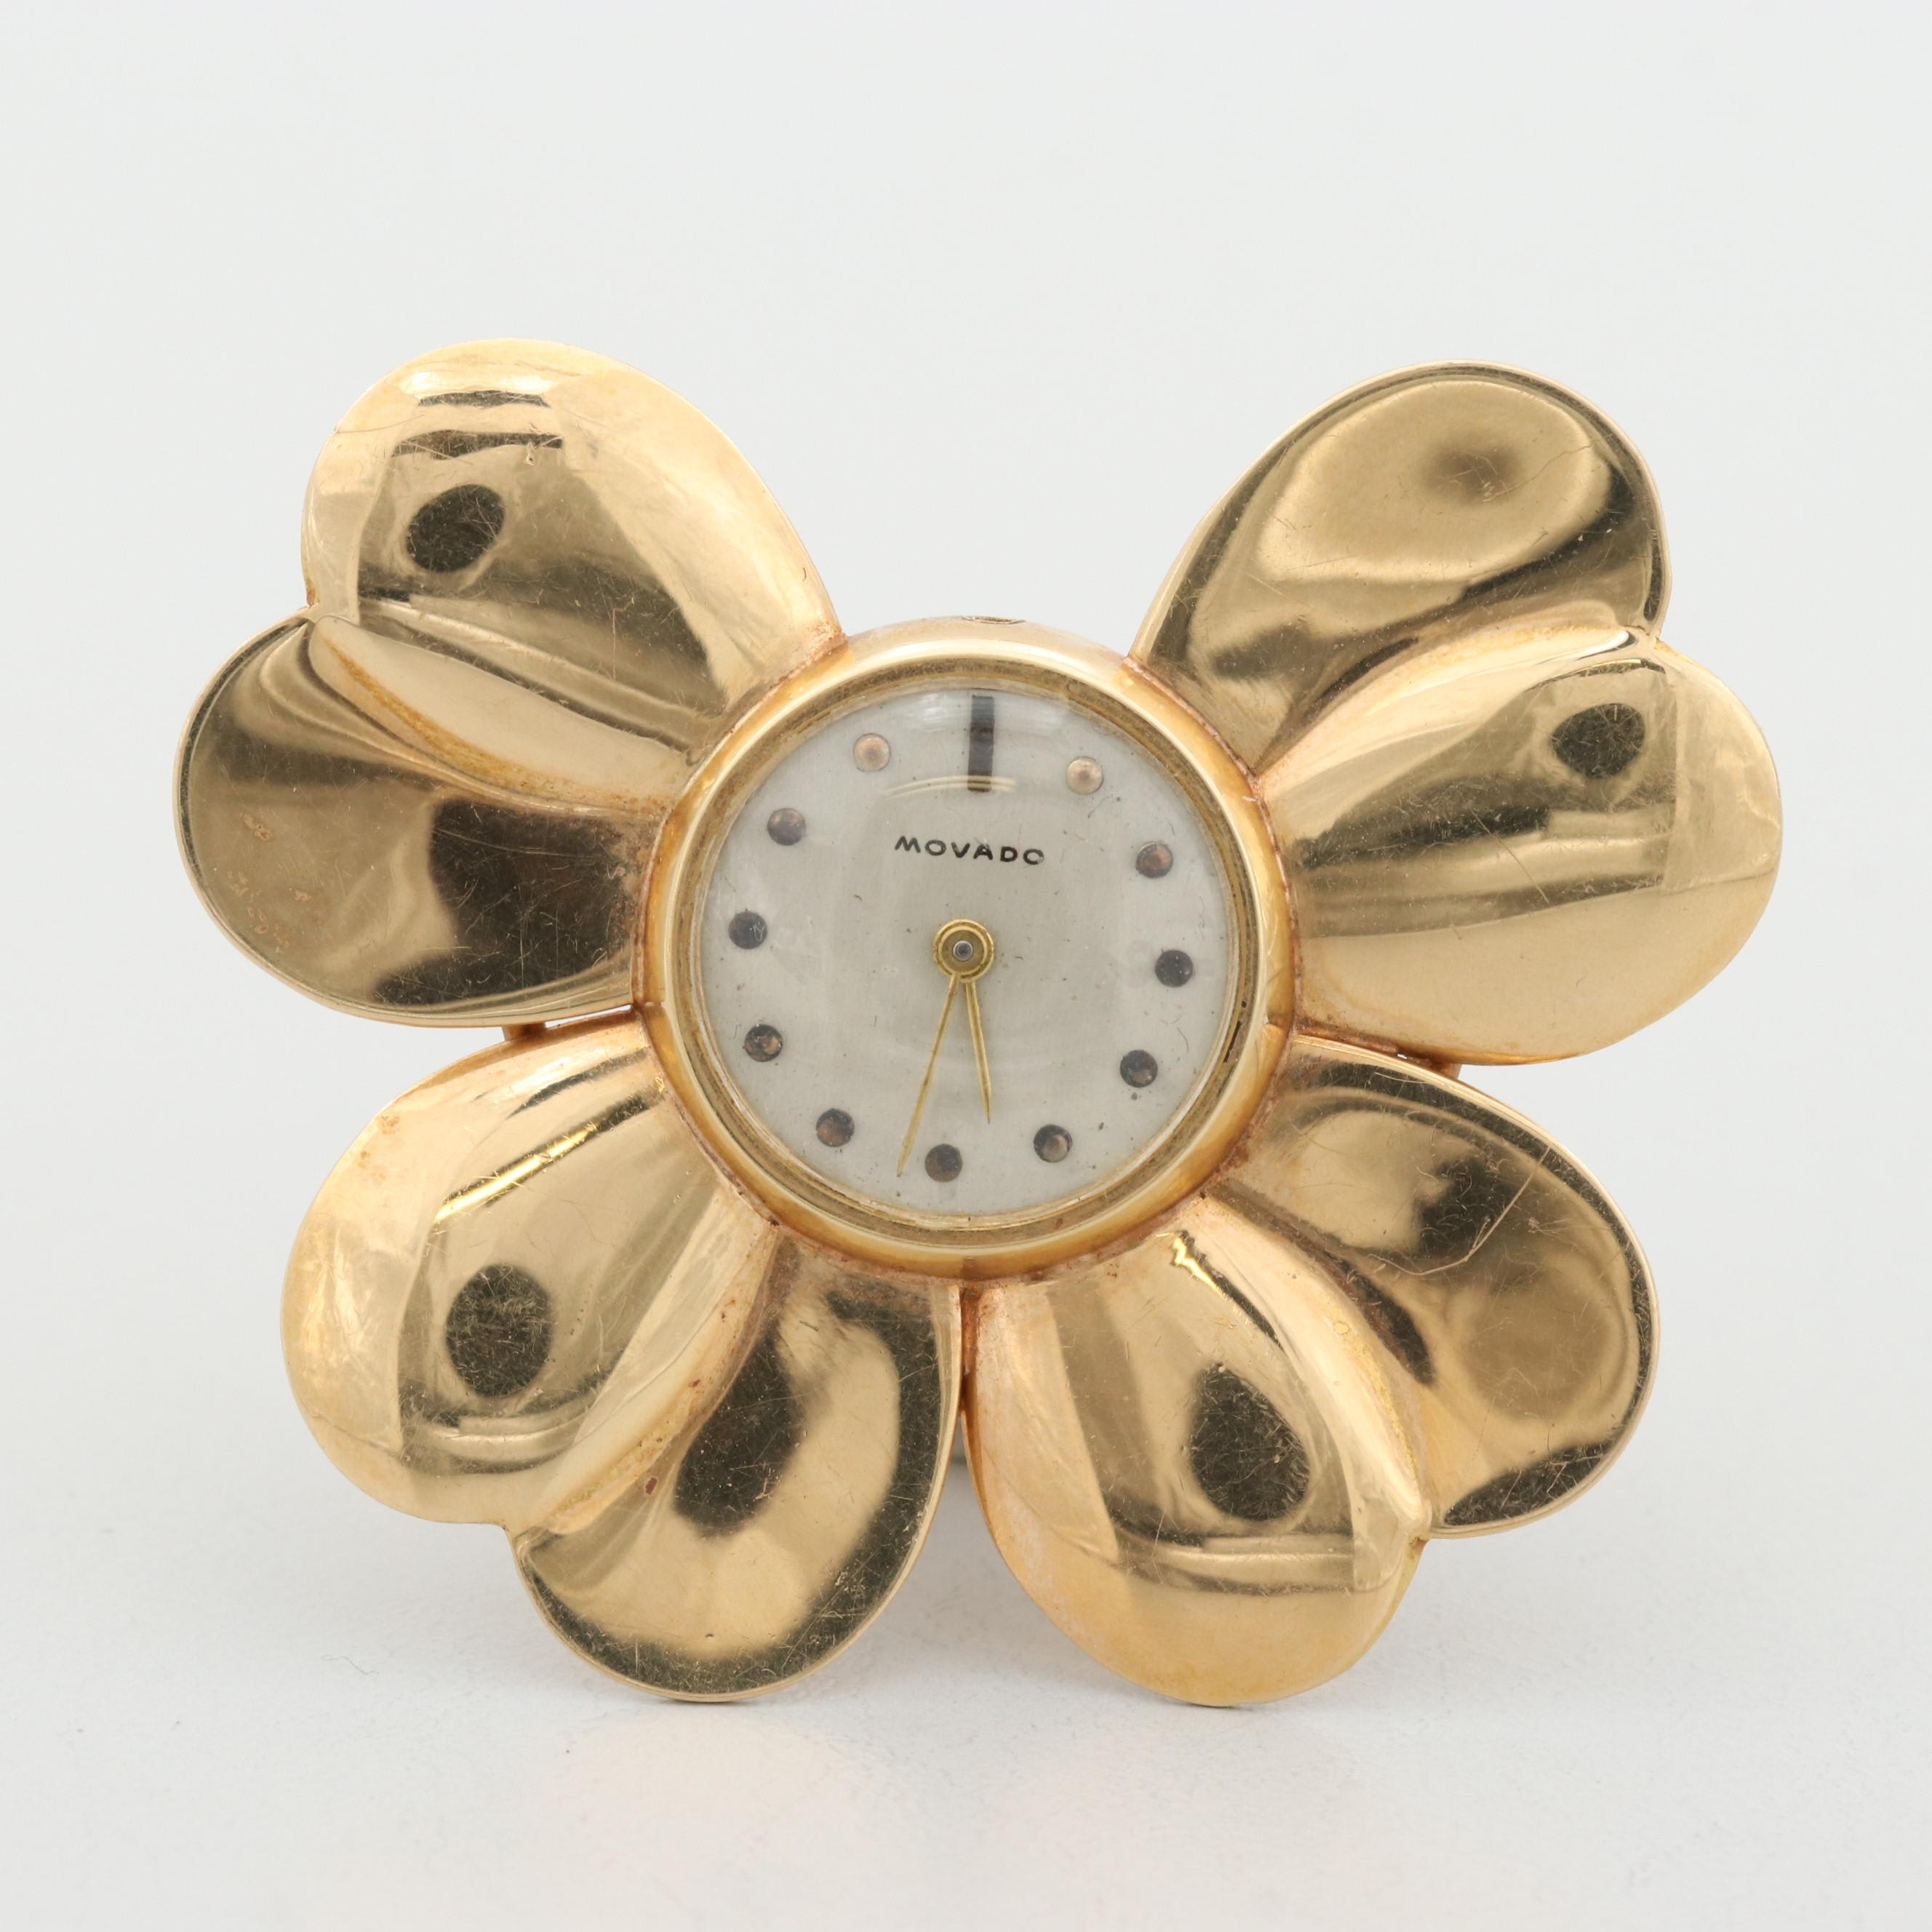 Movado 14K Yellow Gold Floral Brooch Watch